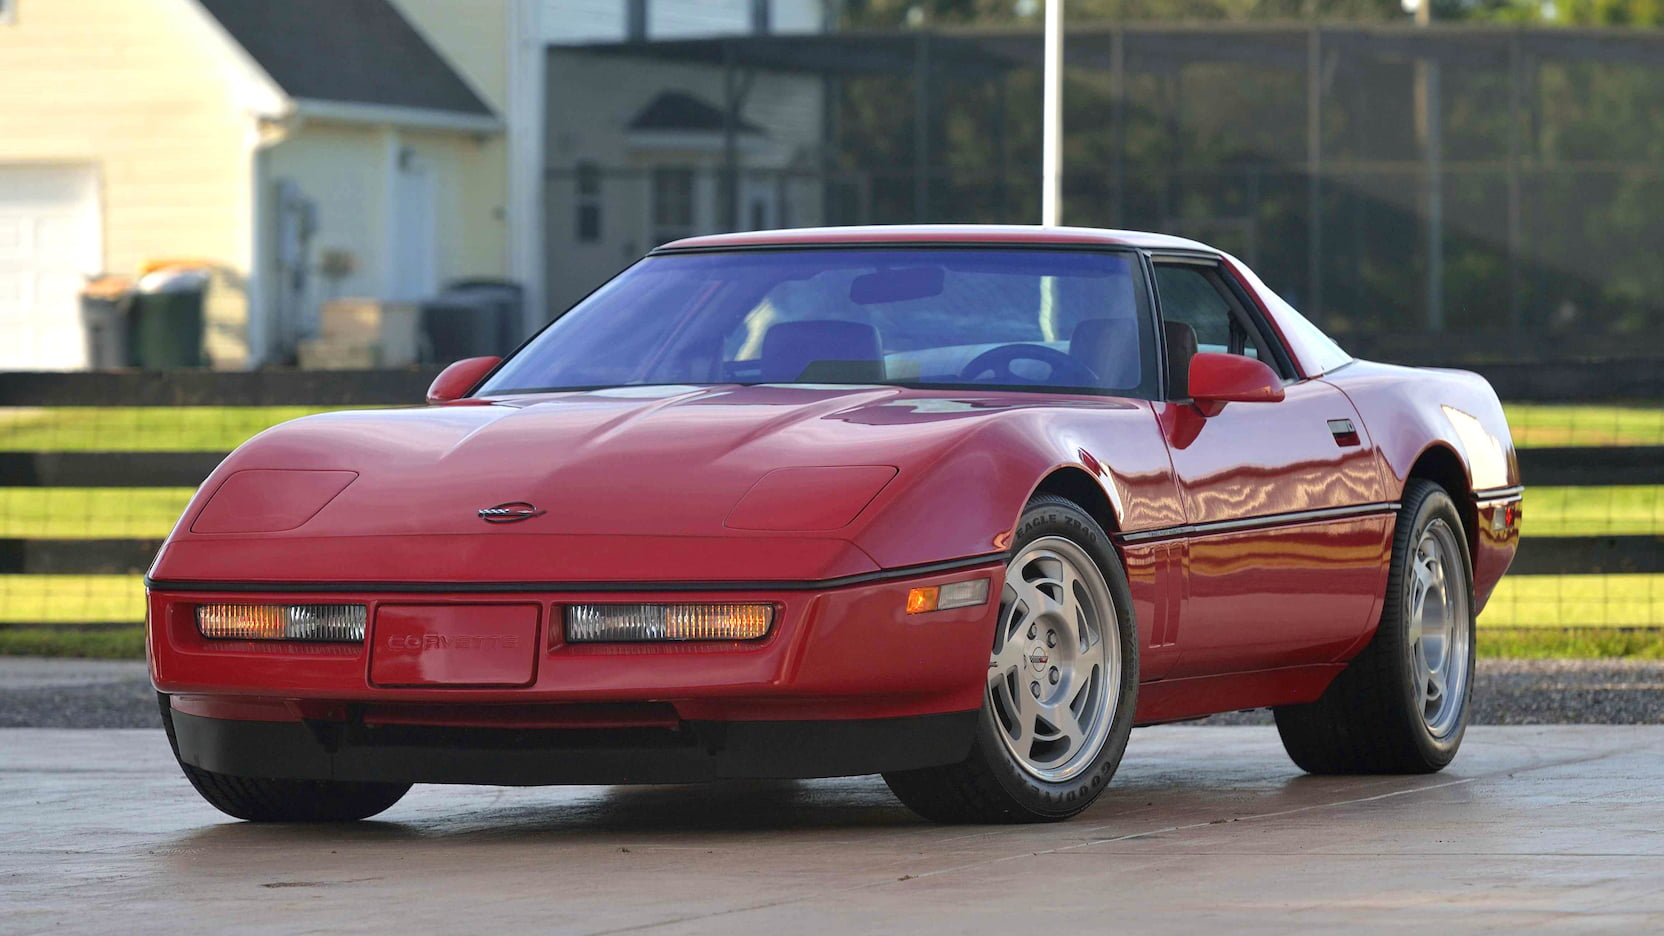 A 1991 Corvette ZR-1 Coupe